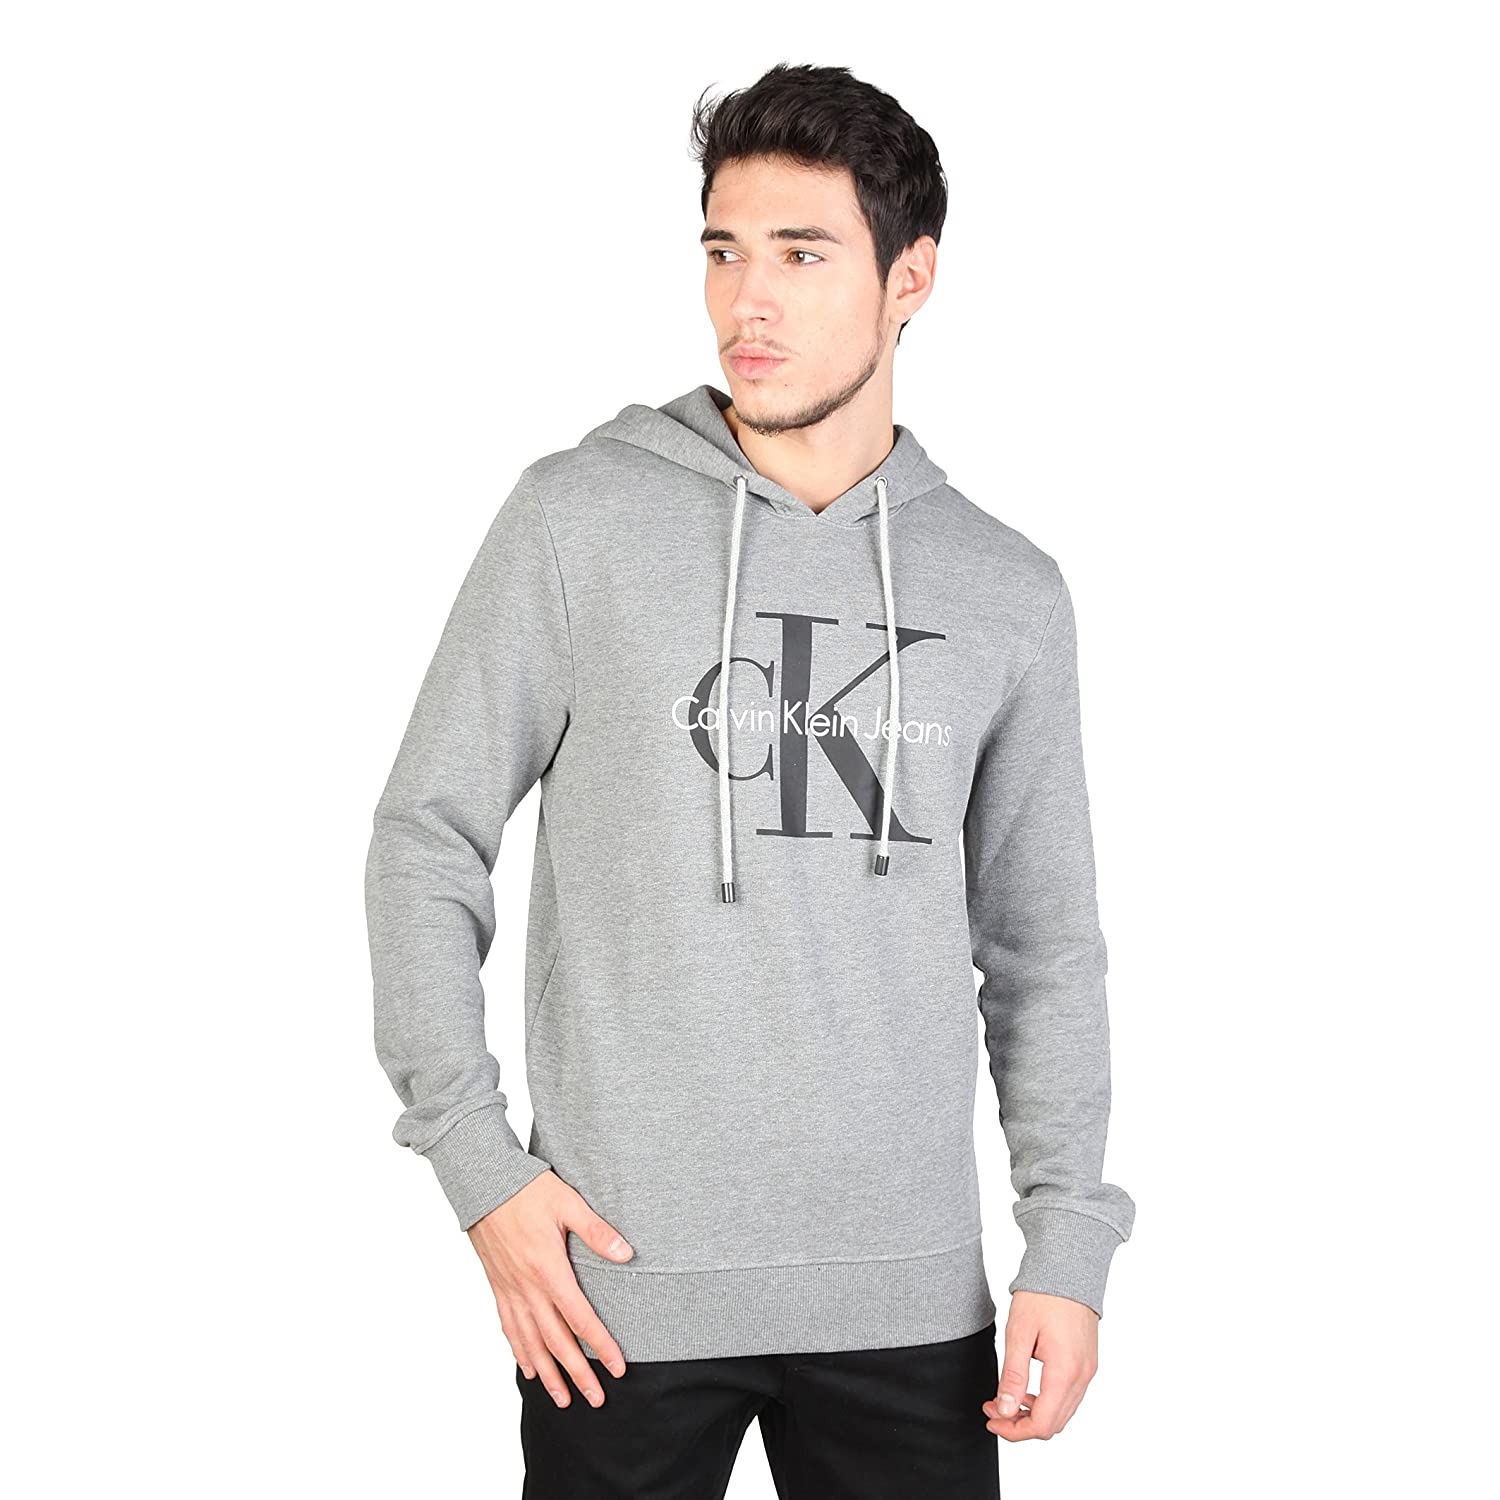 5ee61736c292 Virtual Products Felpa Calvin Klein HODDIES  Amazon.co.uk  Clothing